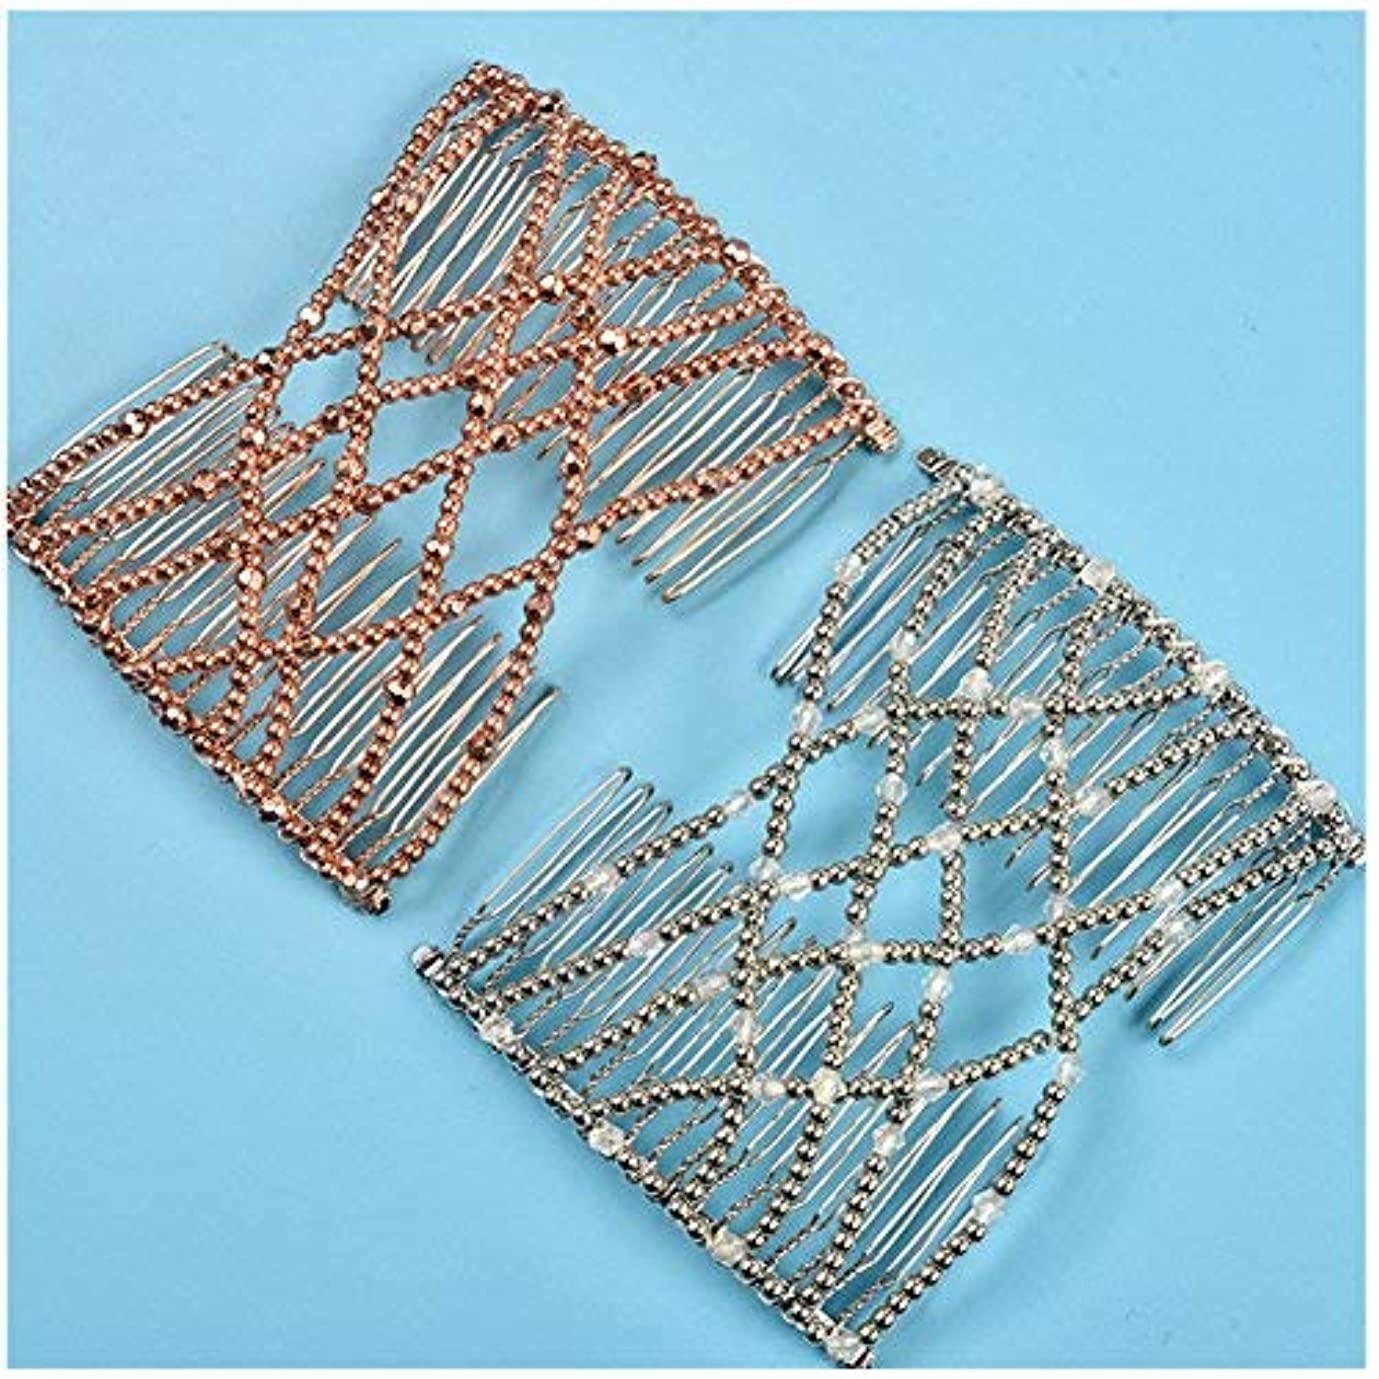 従順有益な想像するLovef 2pcs Fashion Magic Beaded Elasticity Double Hair Comb Clip Stretchy Women Hair Accessories [並行輸入品]